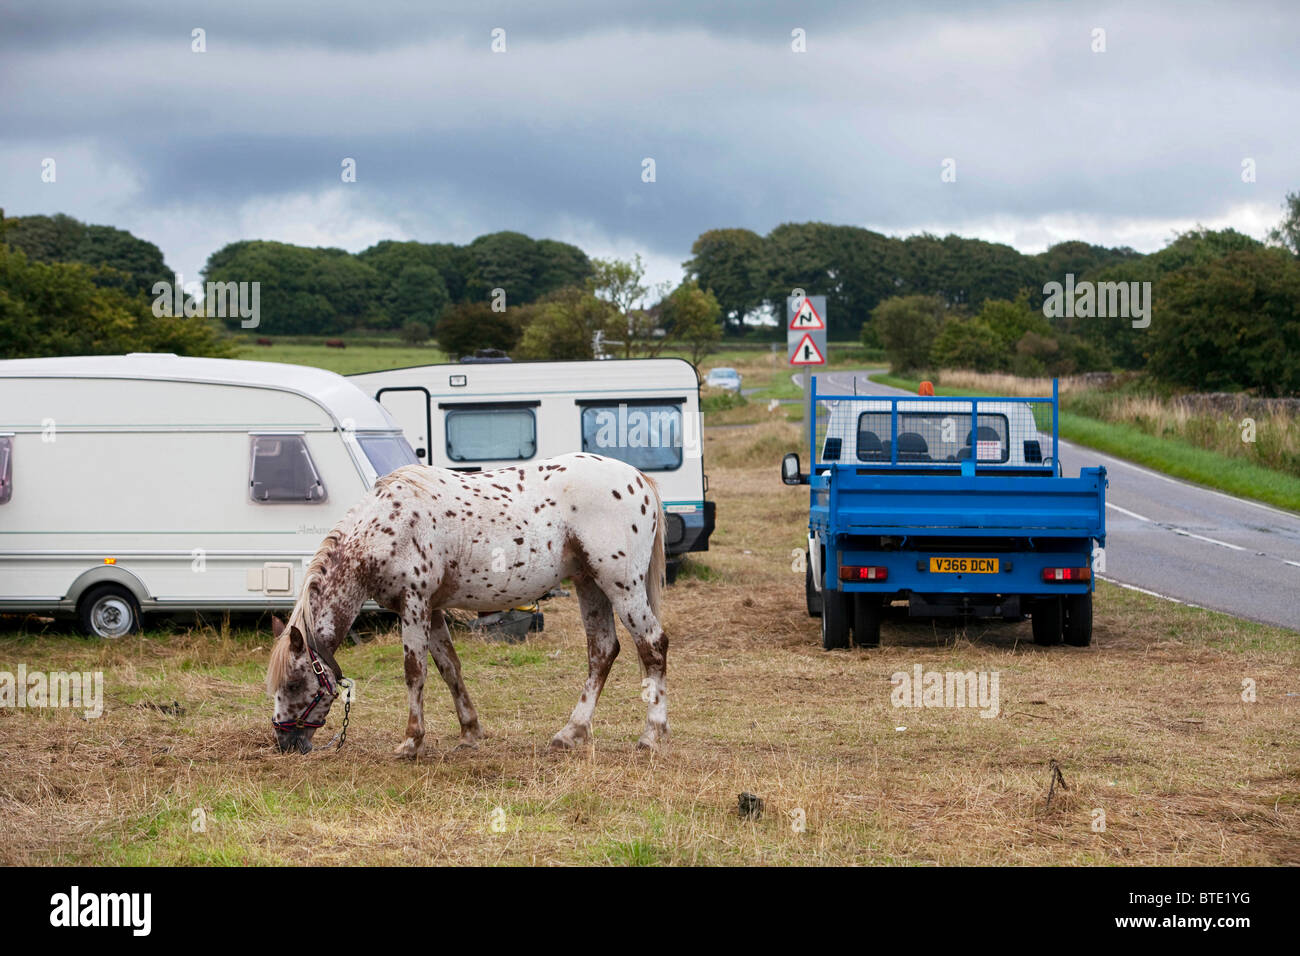 Priddy Sheep Fair is a highlight in the calendar for the gypsy community giving these families a place to stop. - Stock Image